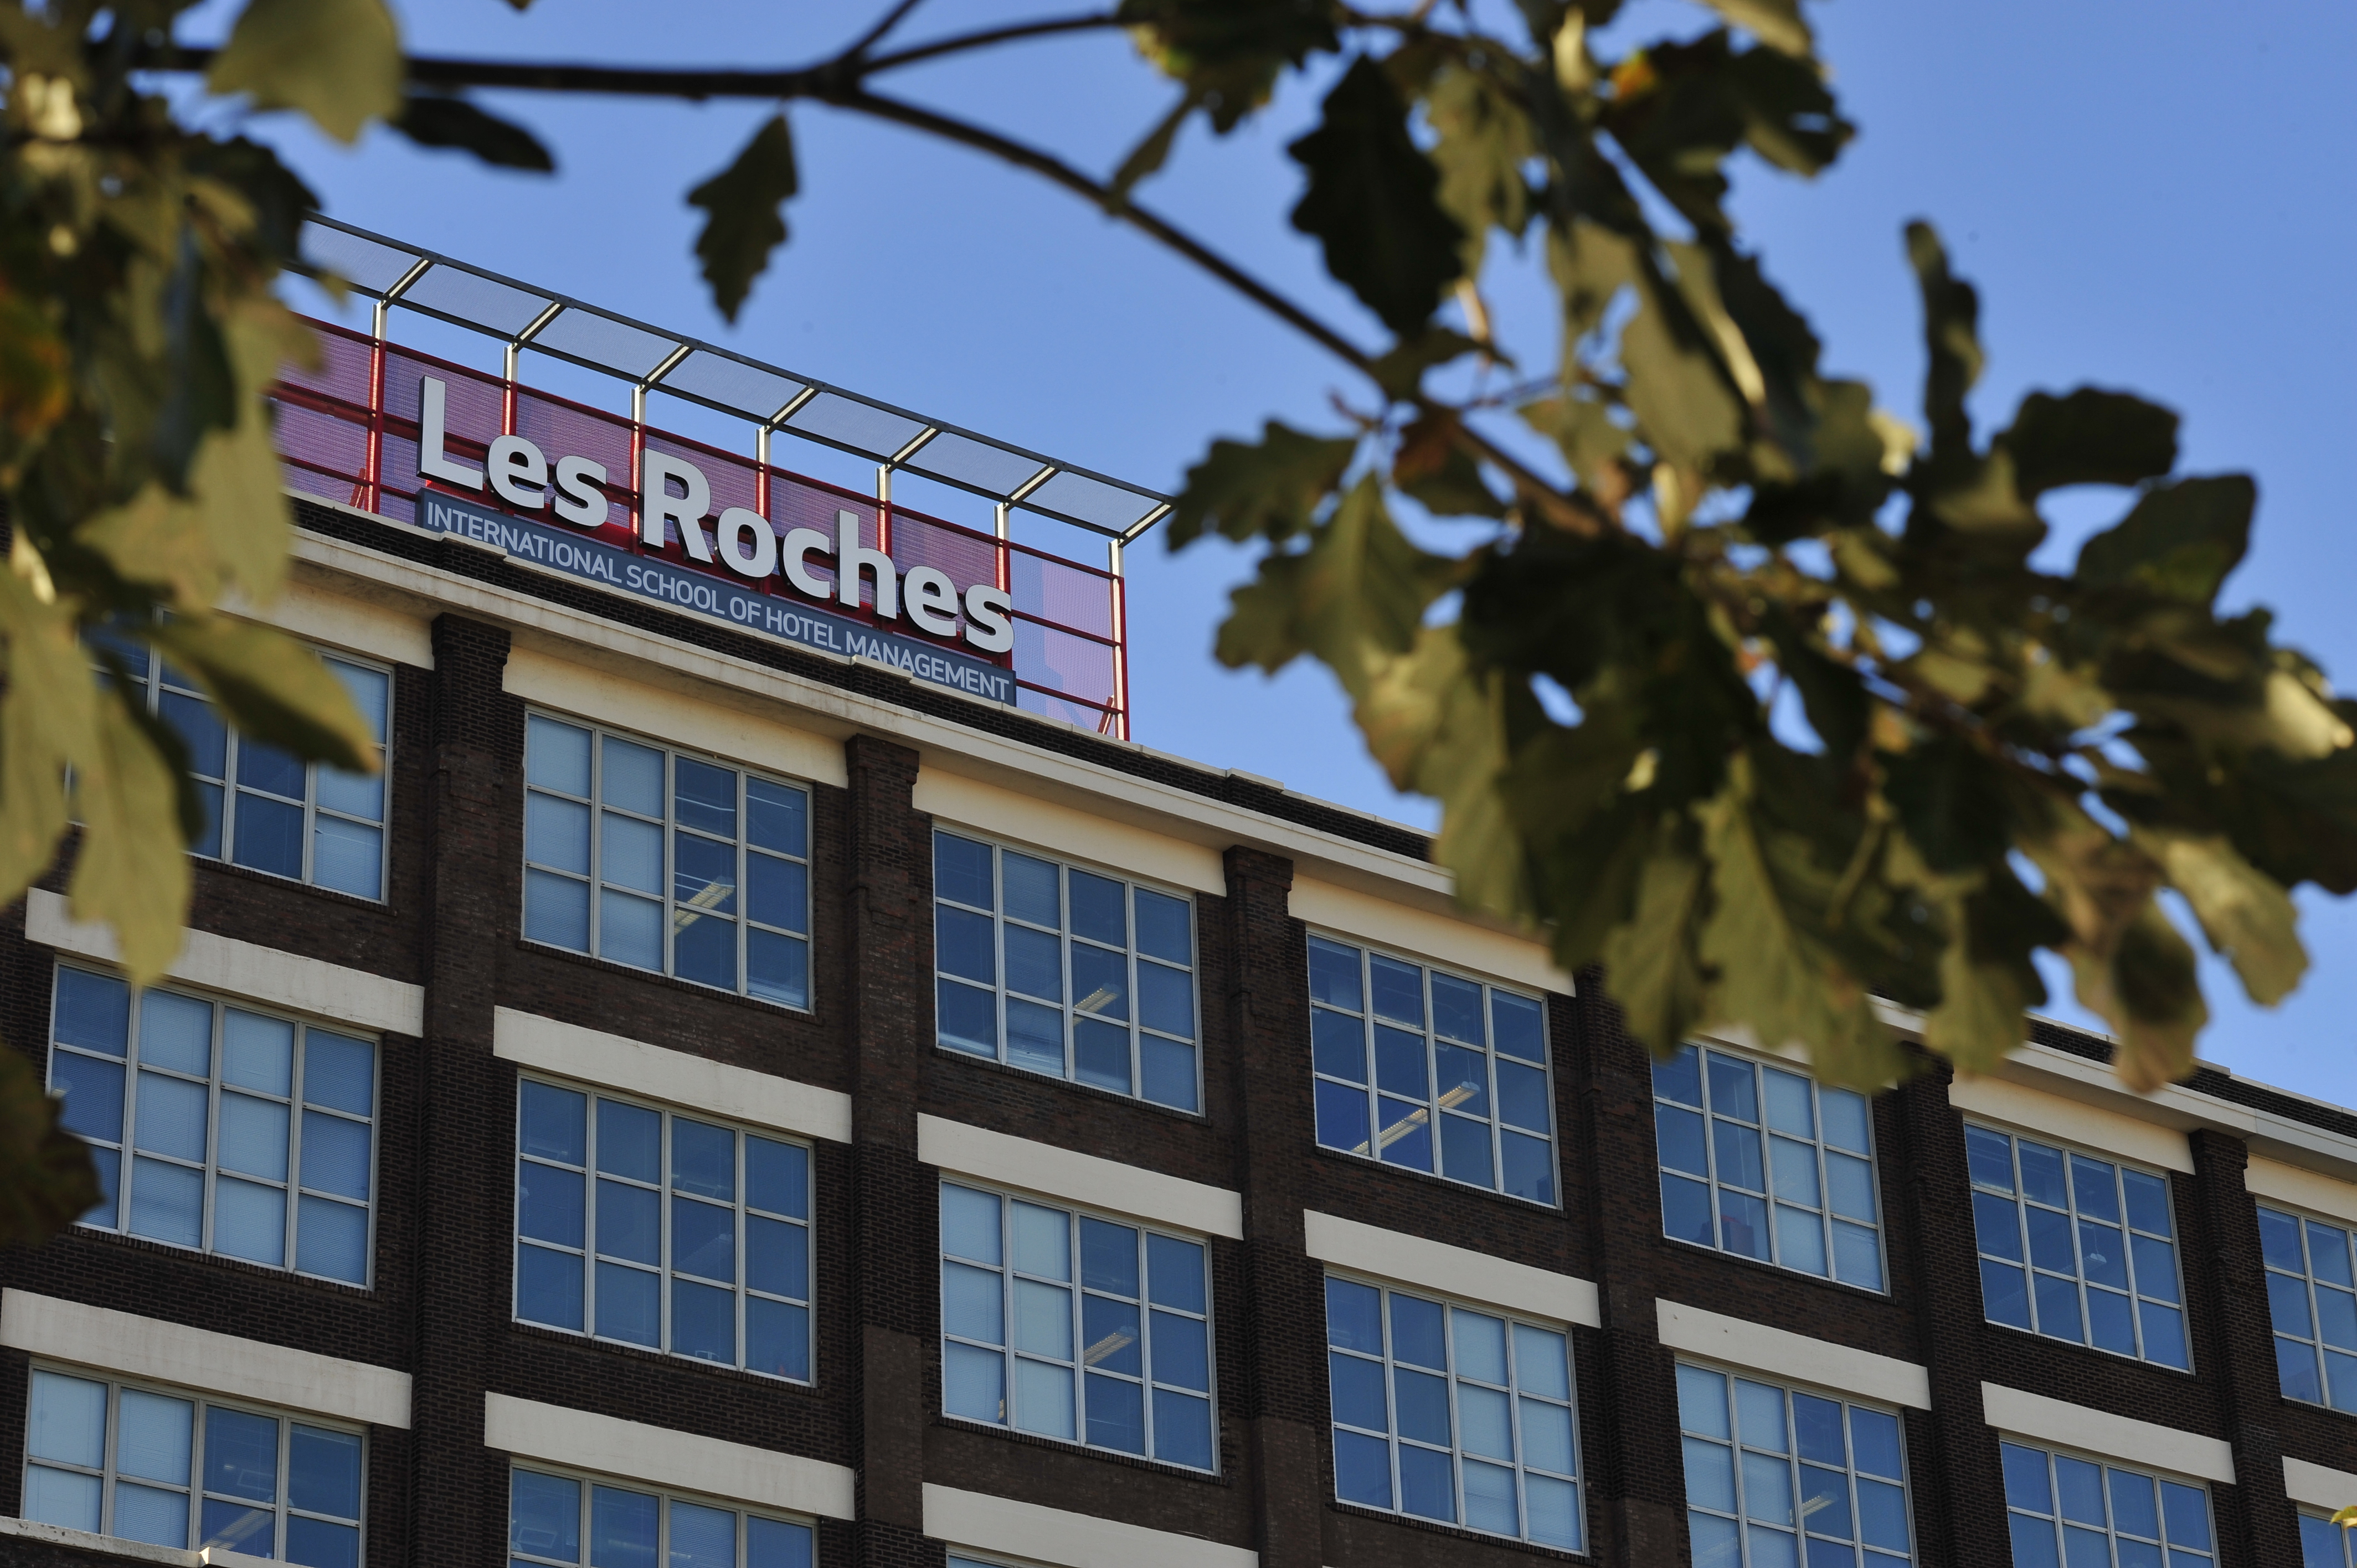 Les Roches opens a new campus in Chicago, becoming the first Swiss hospitality school to open in the US